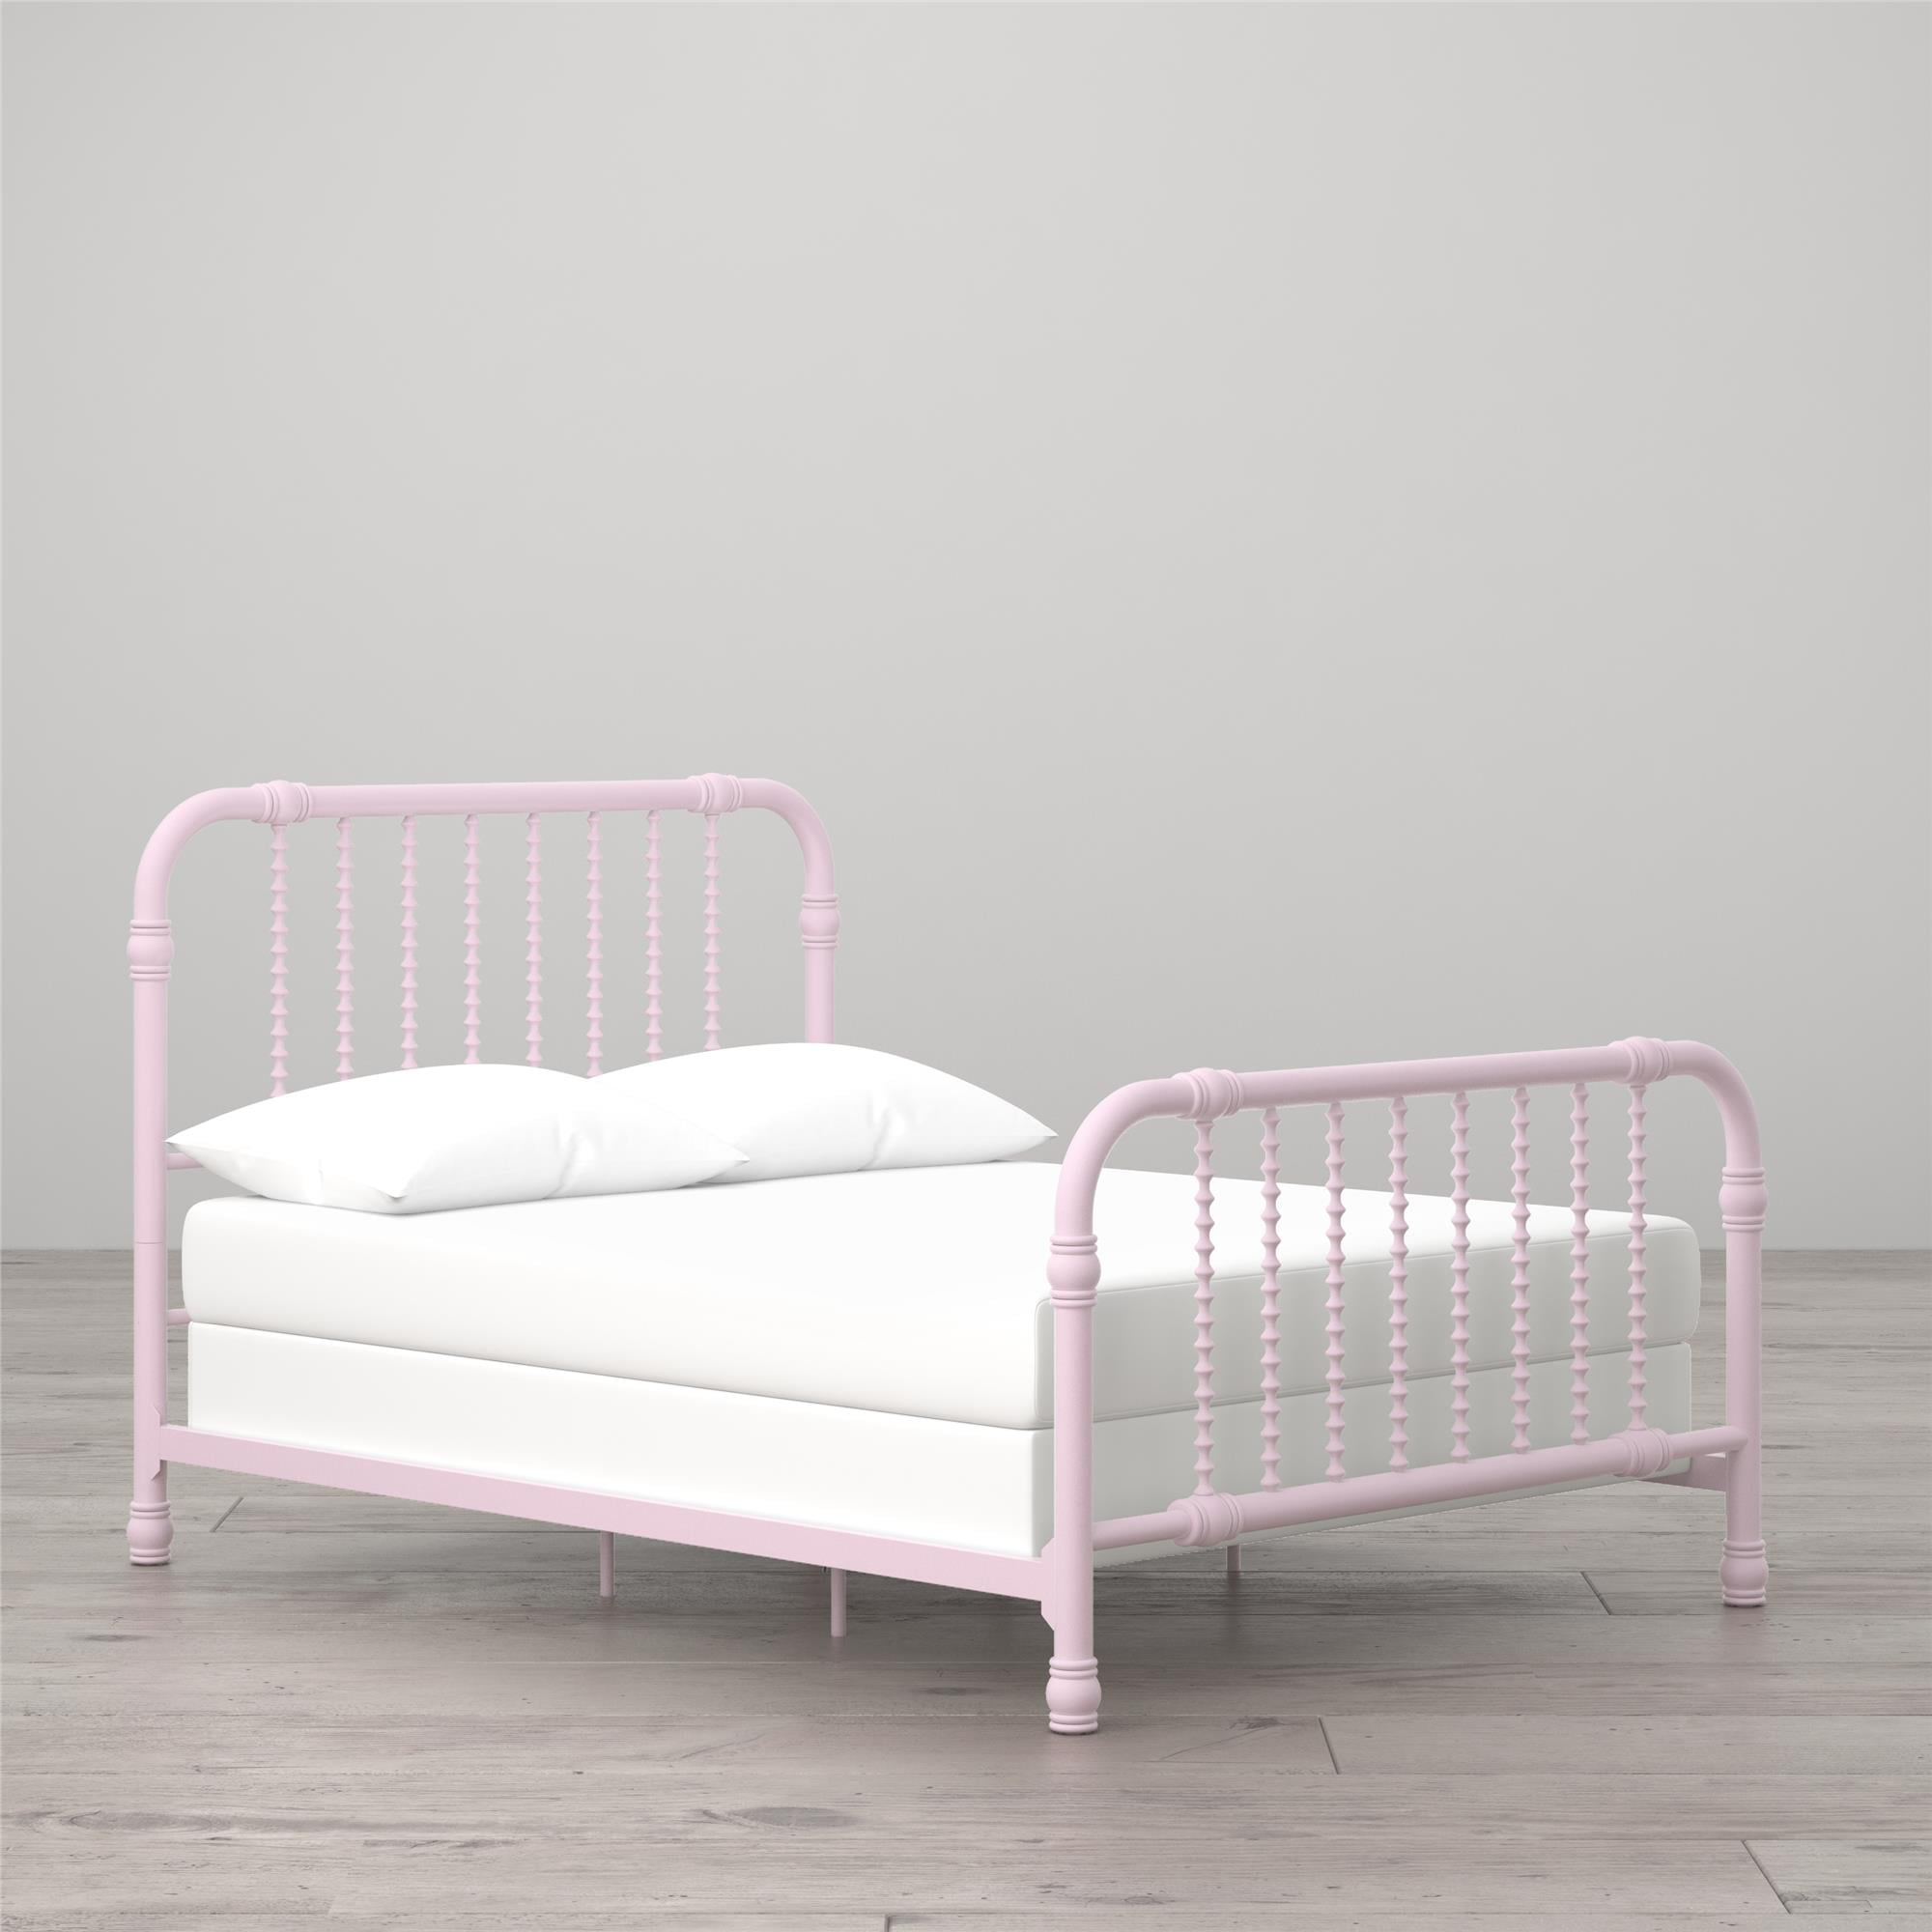 Little Seeds Monarch Hill Wren Metal Bed Full, Pink - Walmart.com